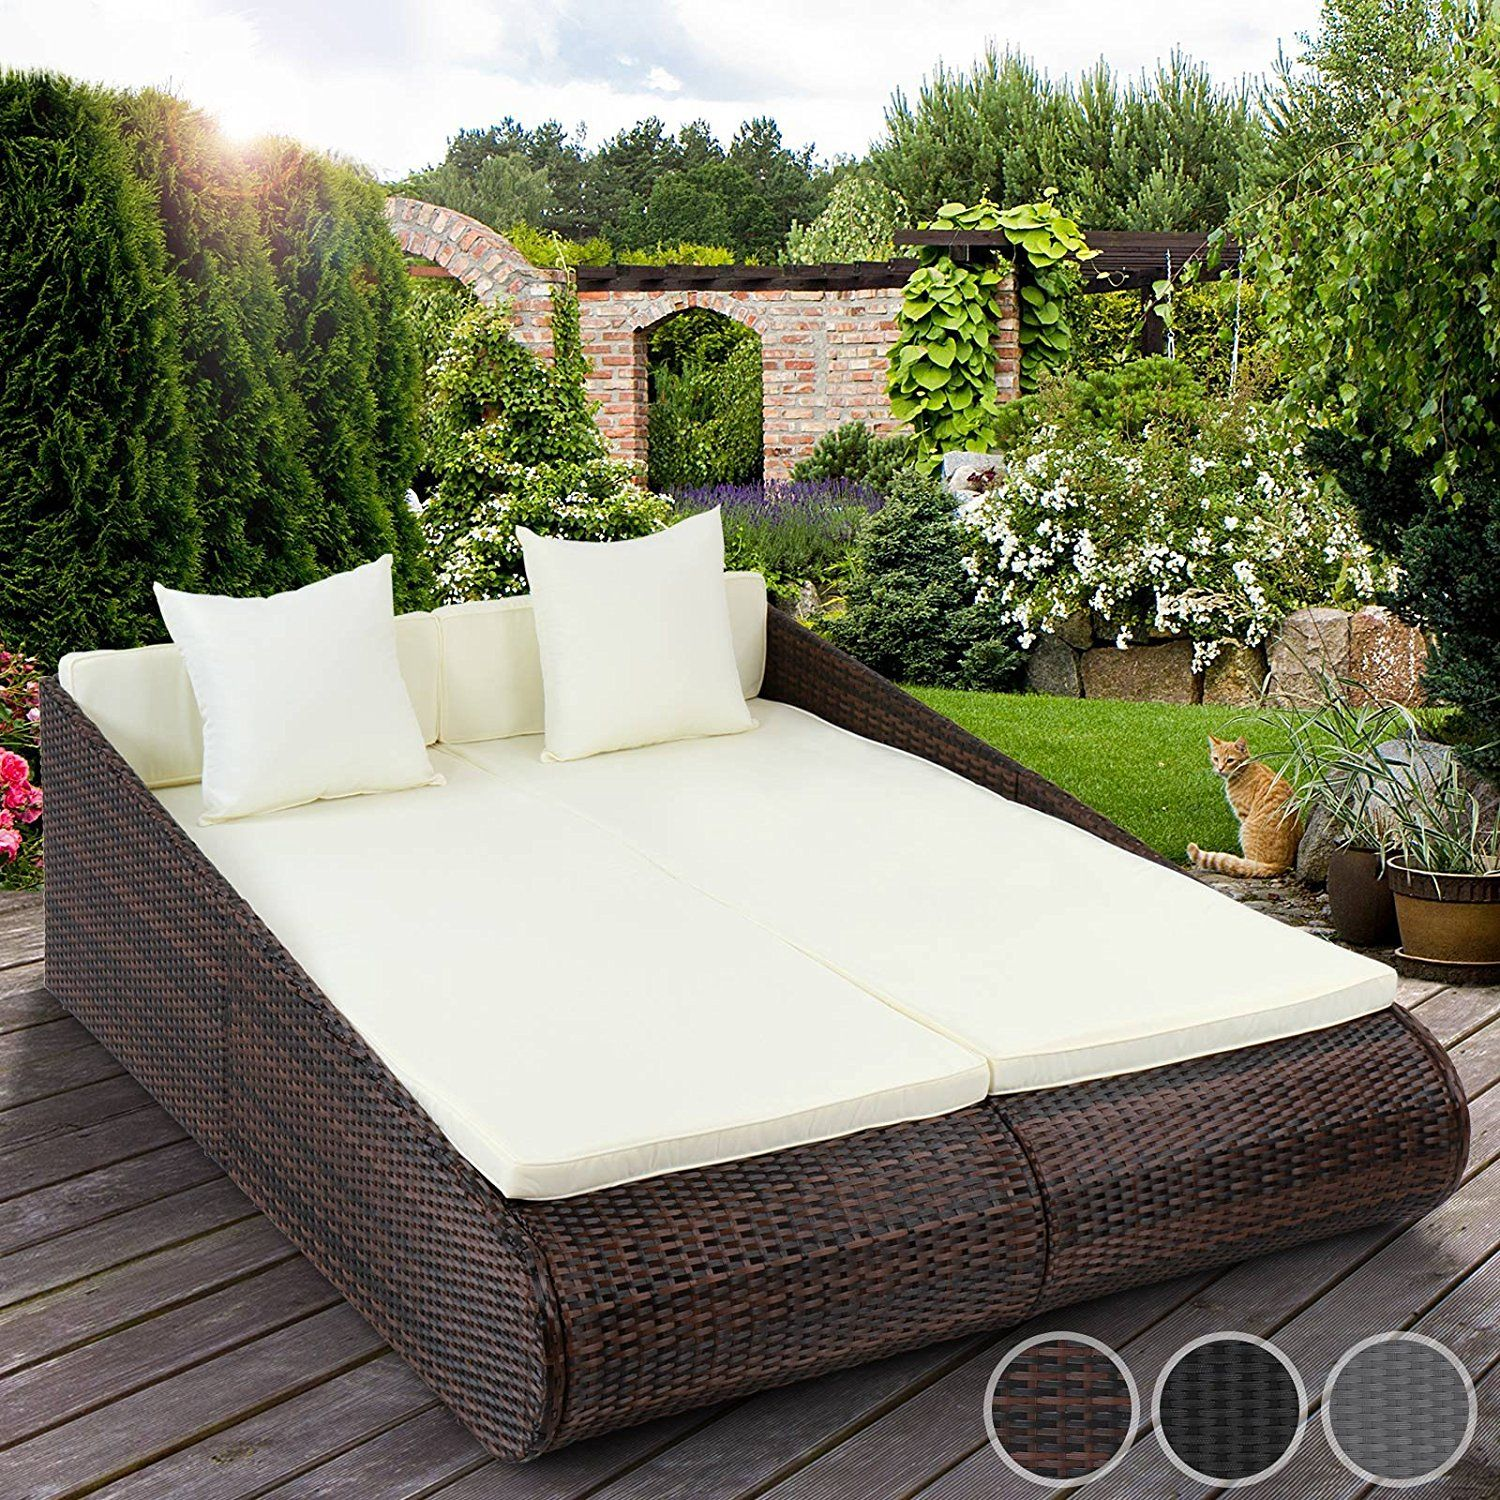 Garden Rattan Sofa Uk Miadomodo Poly Rattan Sun Lounger Indoor Outdoor Garden Sofa Day